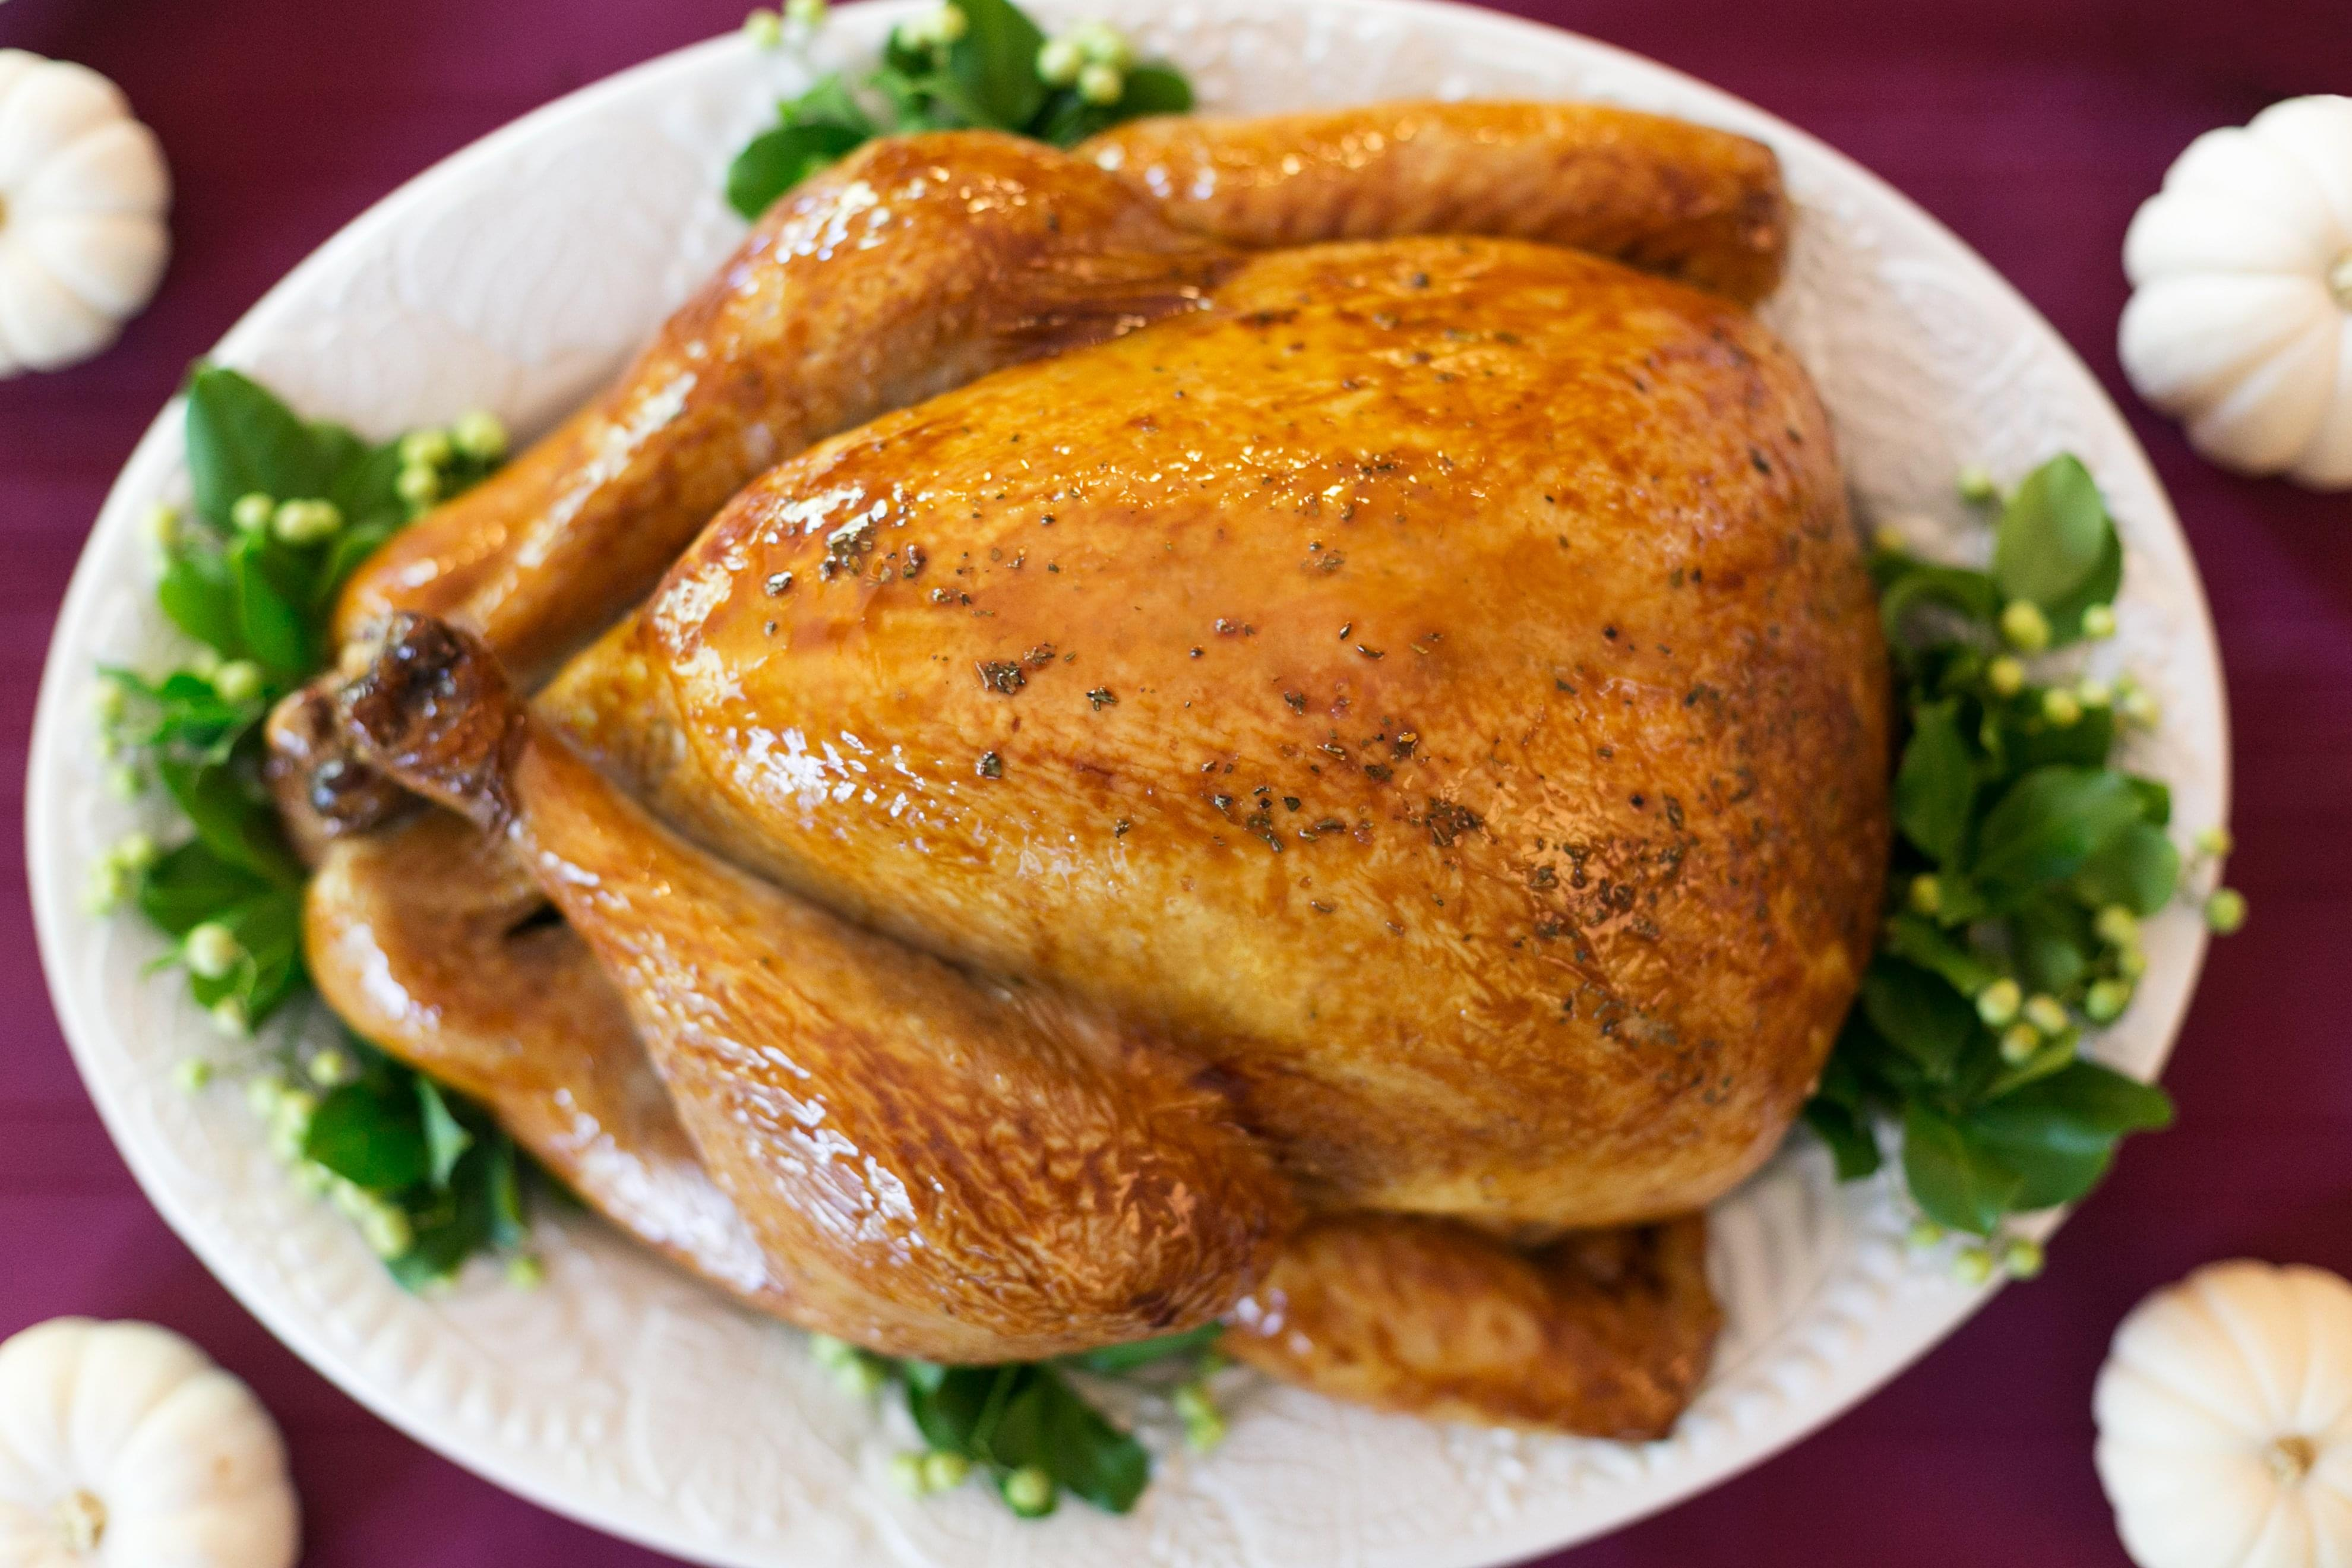 Turkey day is around the corner: Turkey safety tips for your Thanksgiving